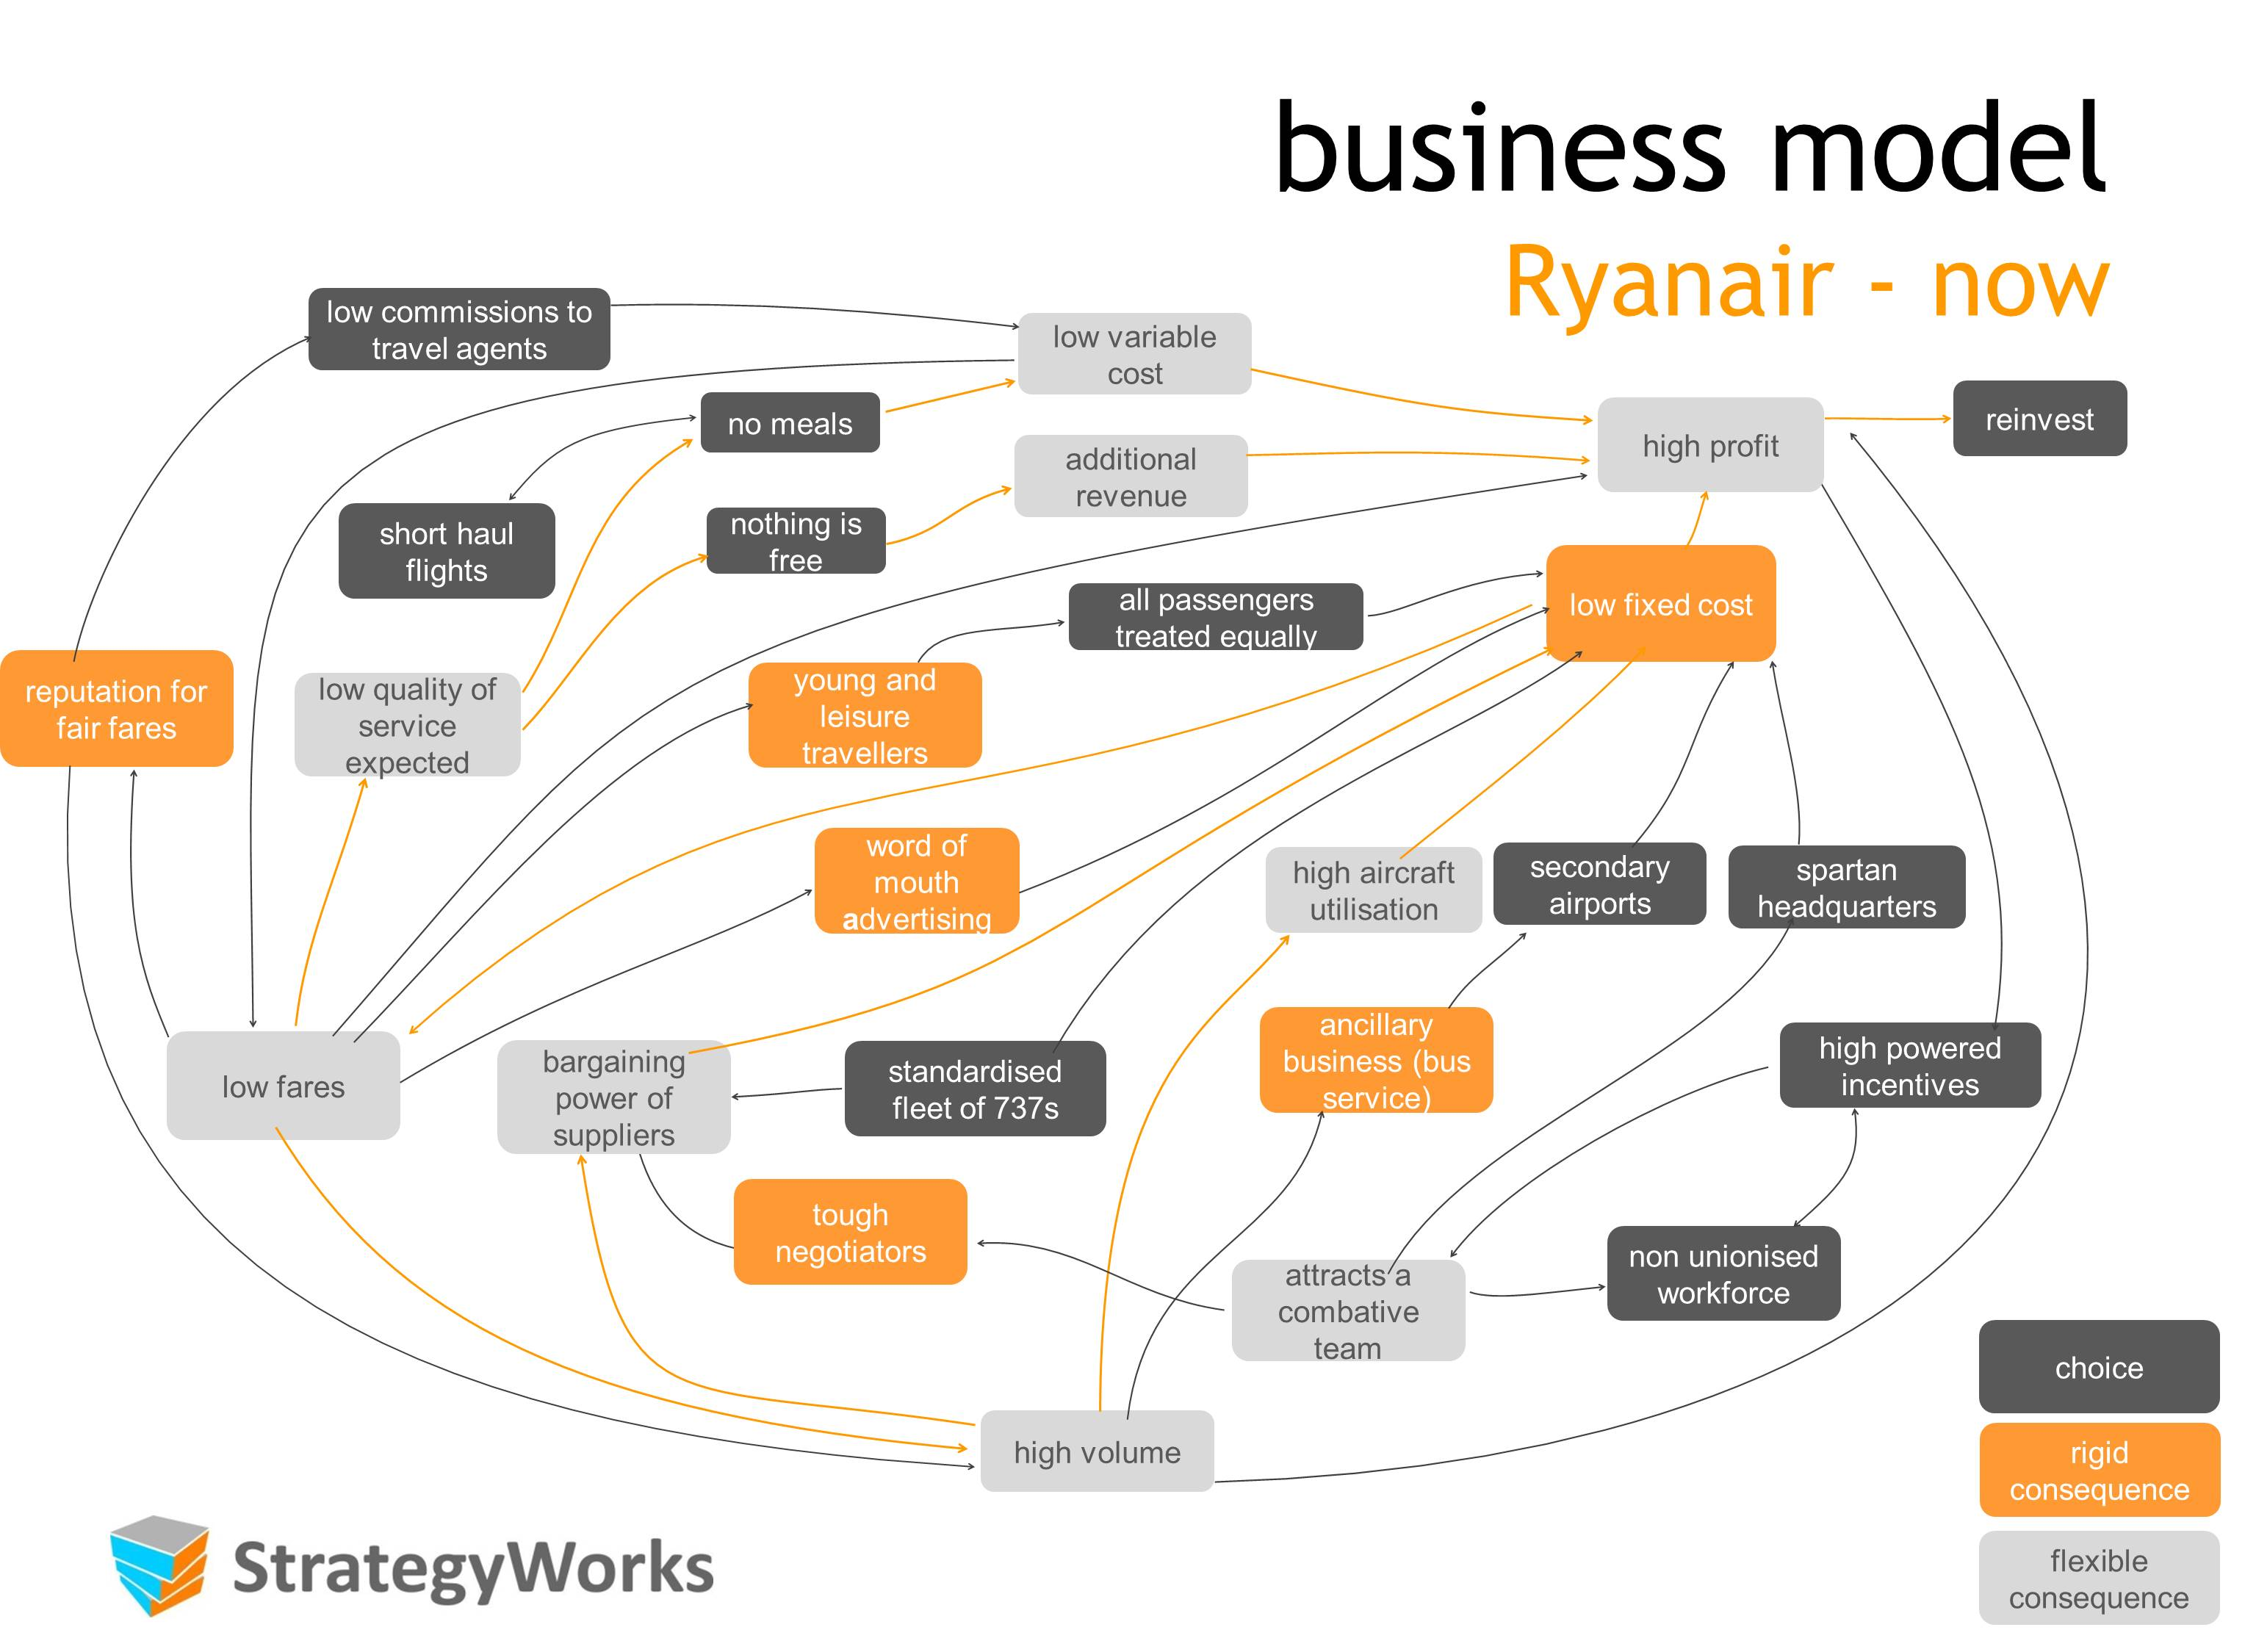 strategic management planning for ryanair Conditions for effective it strategic management many authors have studied the conditions that need to be in place for an it strategic planning process to be effective.